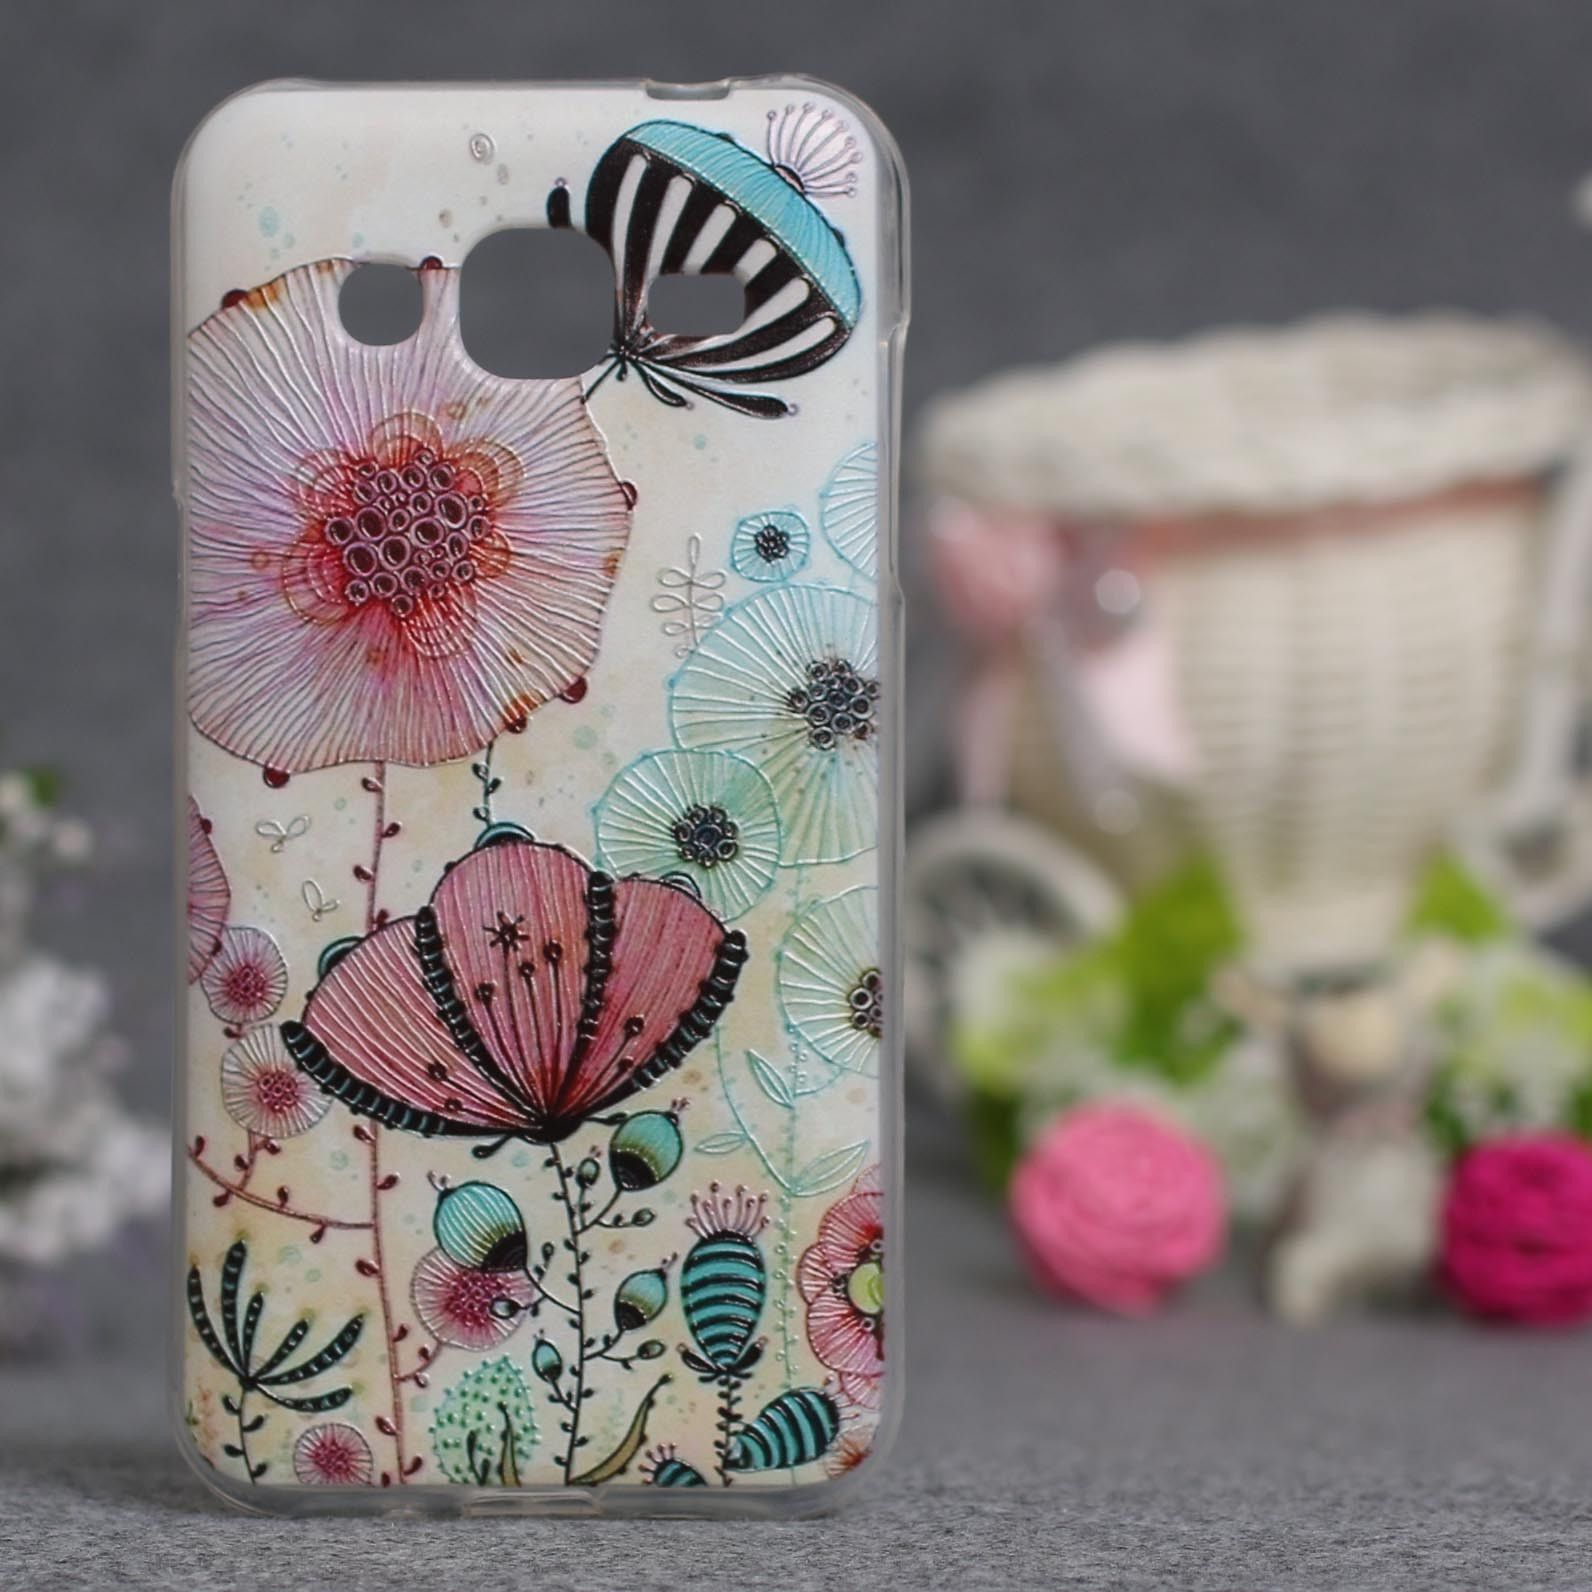 Newest For Galaxy Samsung J2 Case Soft Silicone Tpu Cover Leather Style J200 3d Painting Phone Skin Hood Gel Shell